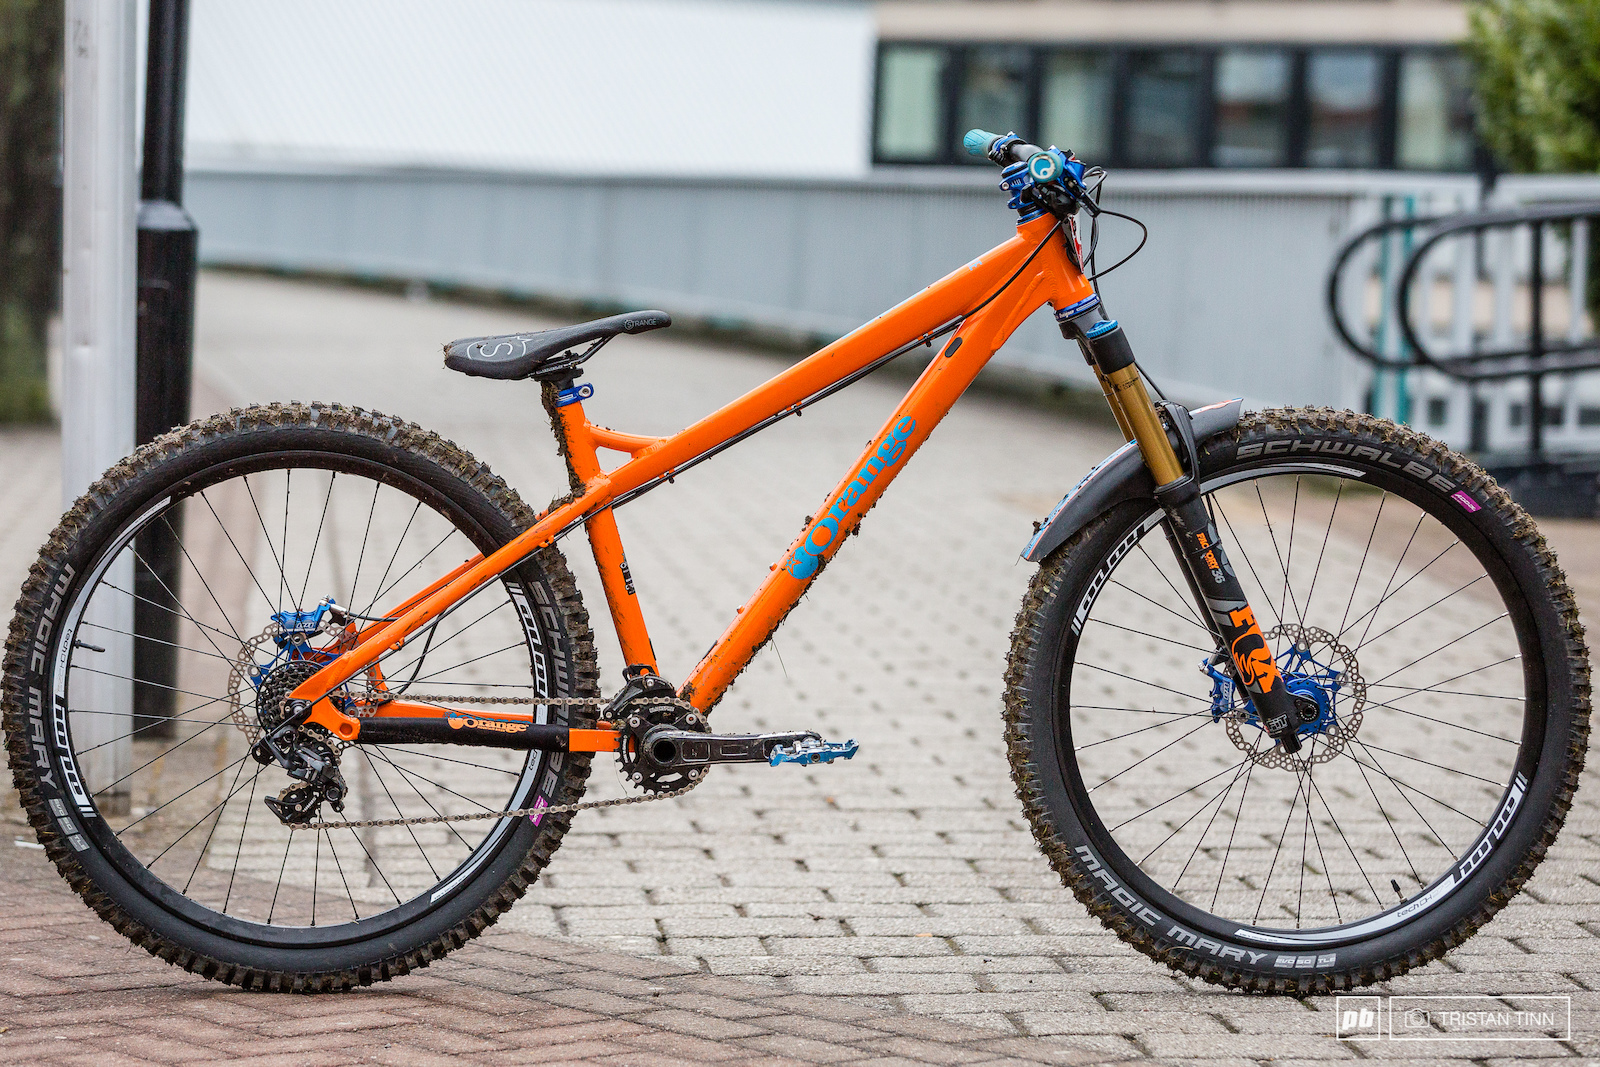 Ben Moores Orange Crush with contrasting blue Hope components